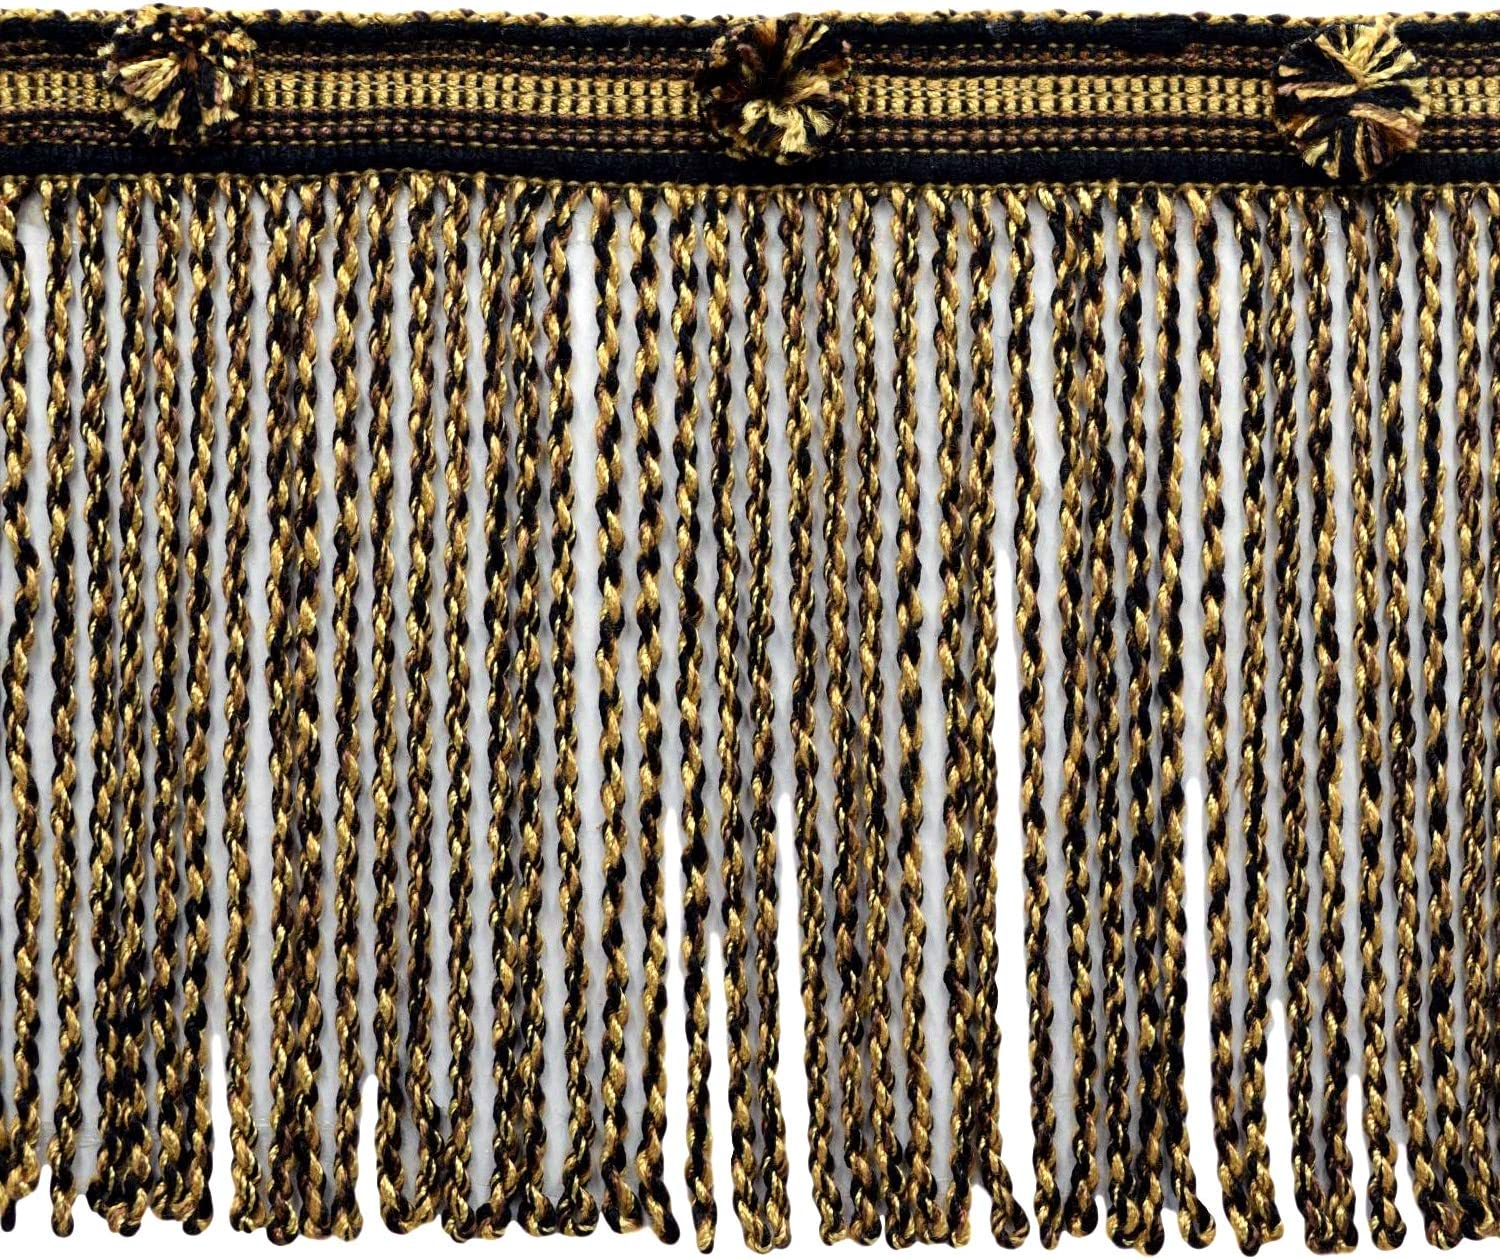 Gold Black 21768 15 Ft // 4.6 Meters D/ÉCOPRO 5 Yard Value Pack of 6 Inch Long Chocolate Brown Straw Bullion Fringe Trim|Style# BFHR6|Color: Chestnut